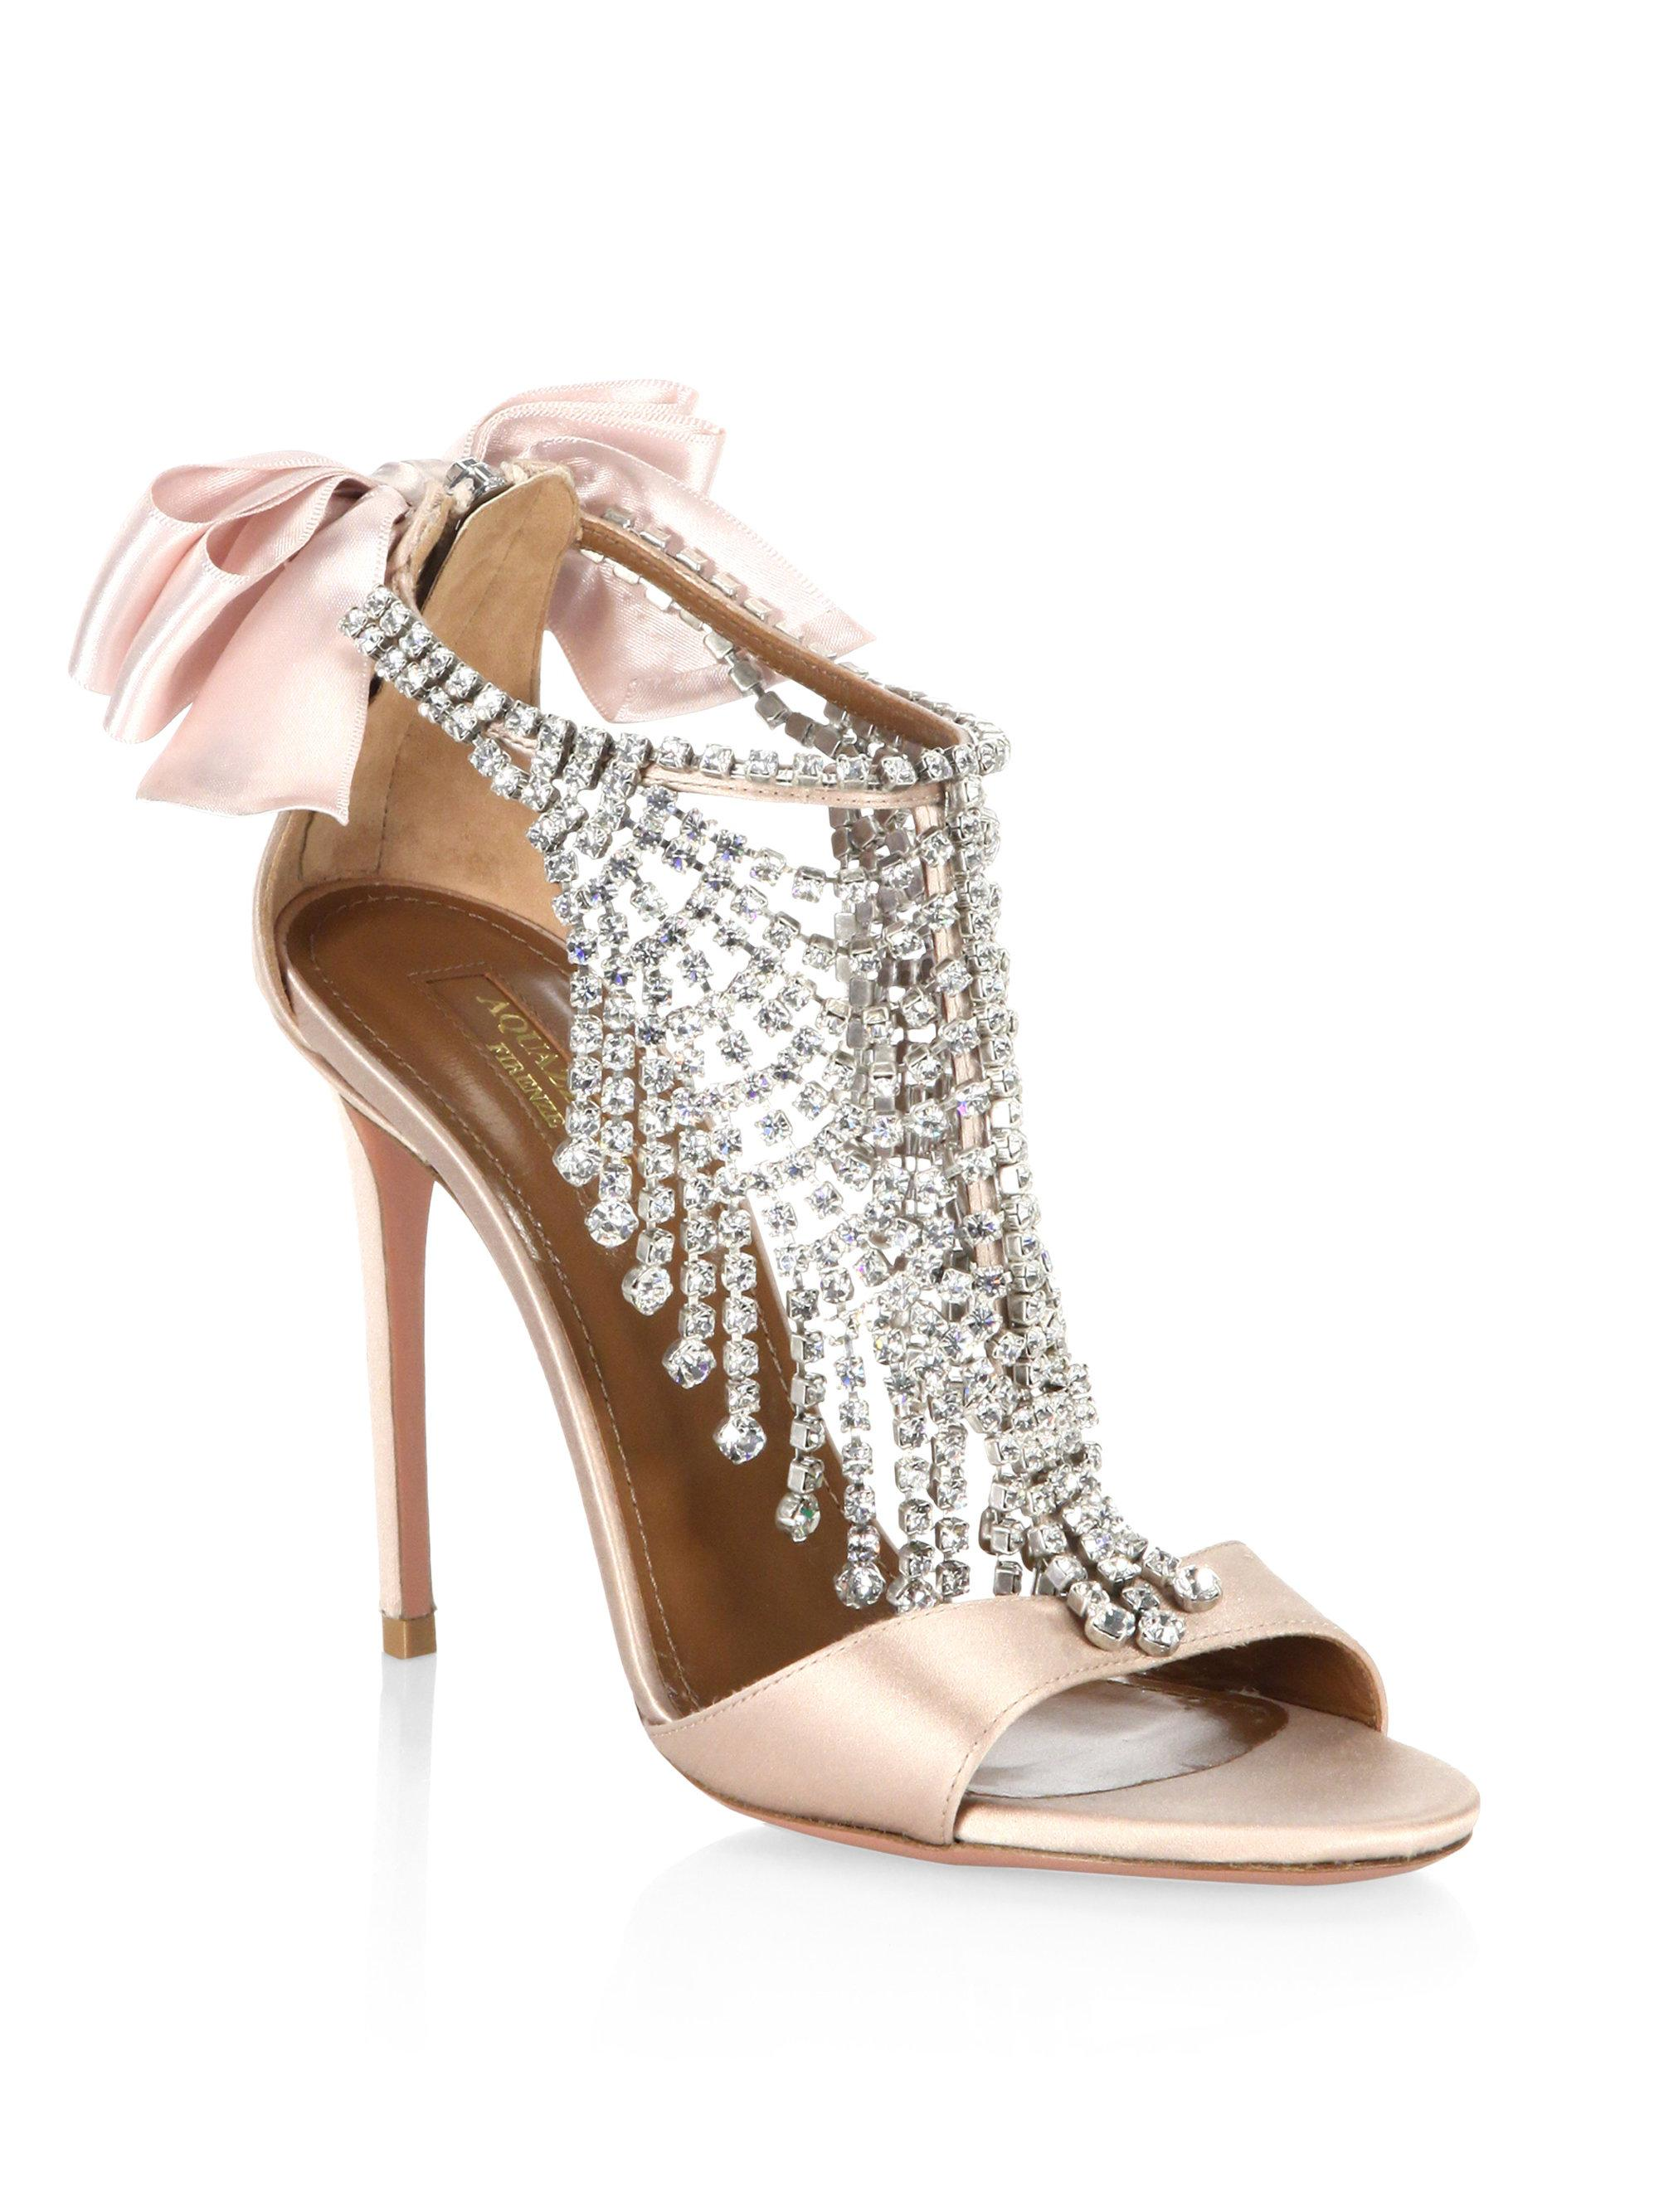 AquazzuraFifth Avenue Crystal & Metallic Leather Sandals Gb5oEhXG